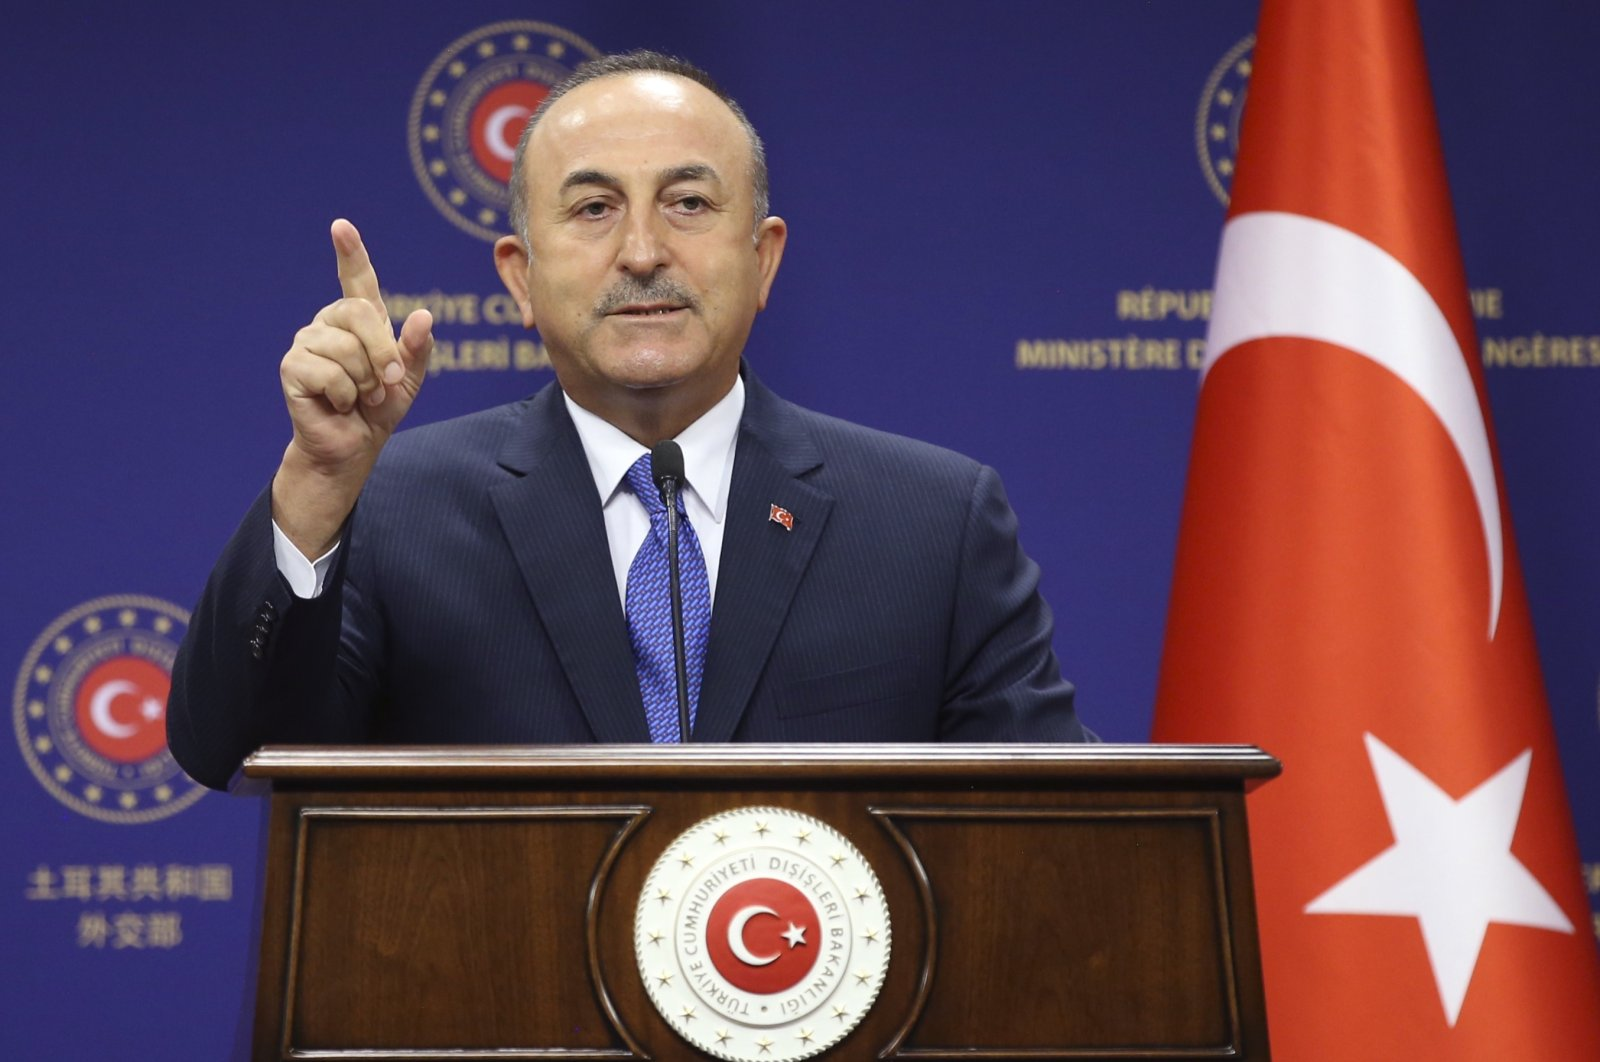 Foreign Minister Mevlüt Çavuşoğlu speaks to the media after talks with German Foreign Minister Heiko Maas, in Ankara, Turkey, Aug. 25, 2020. (AP File Photo)